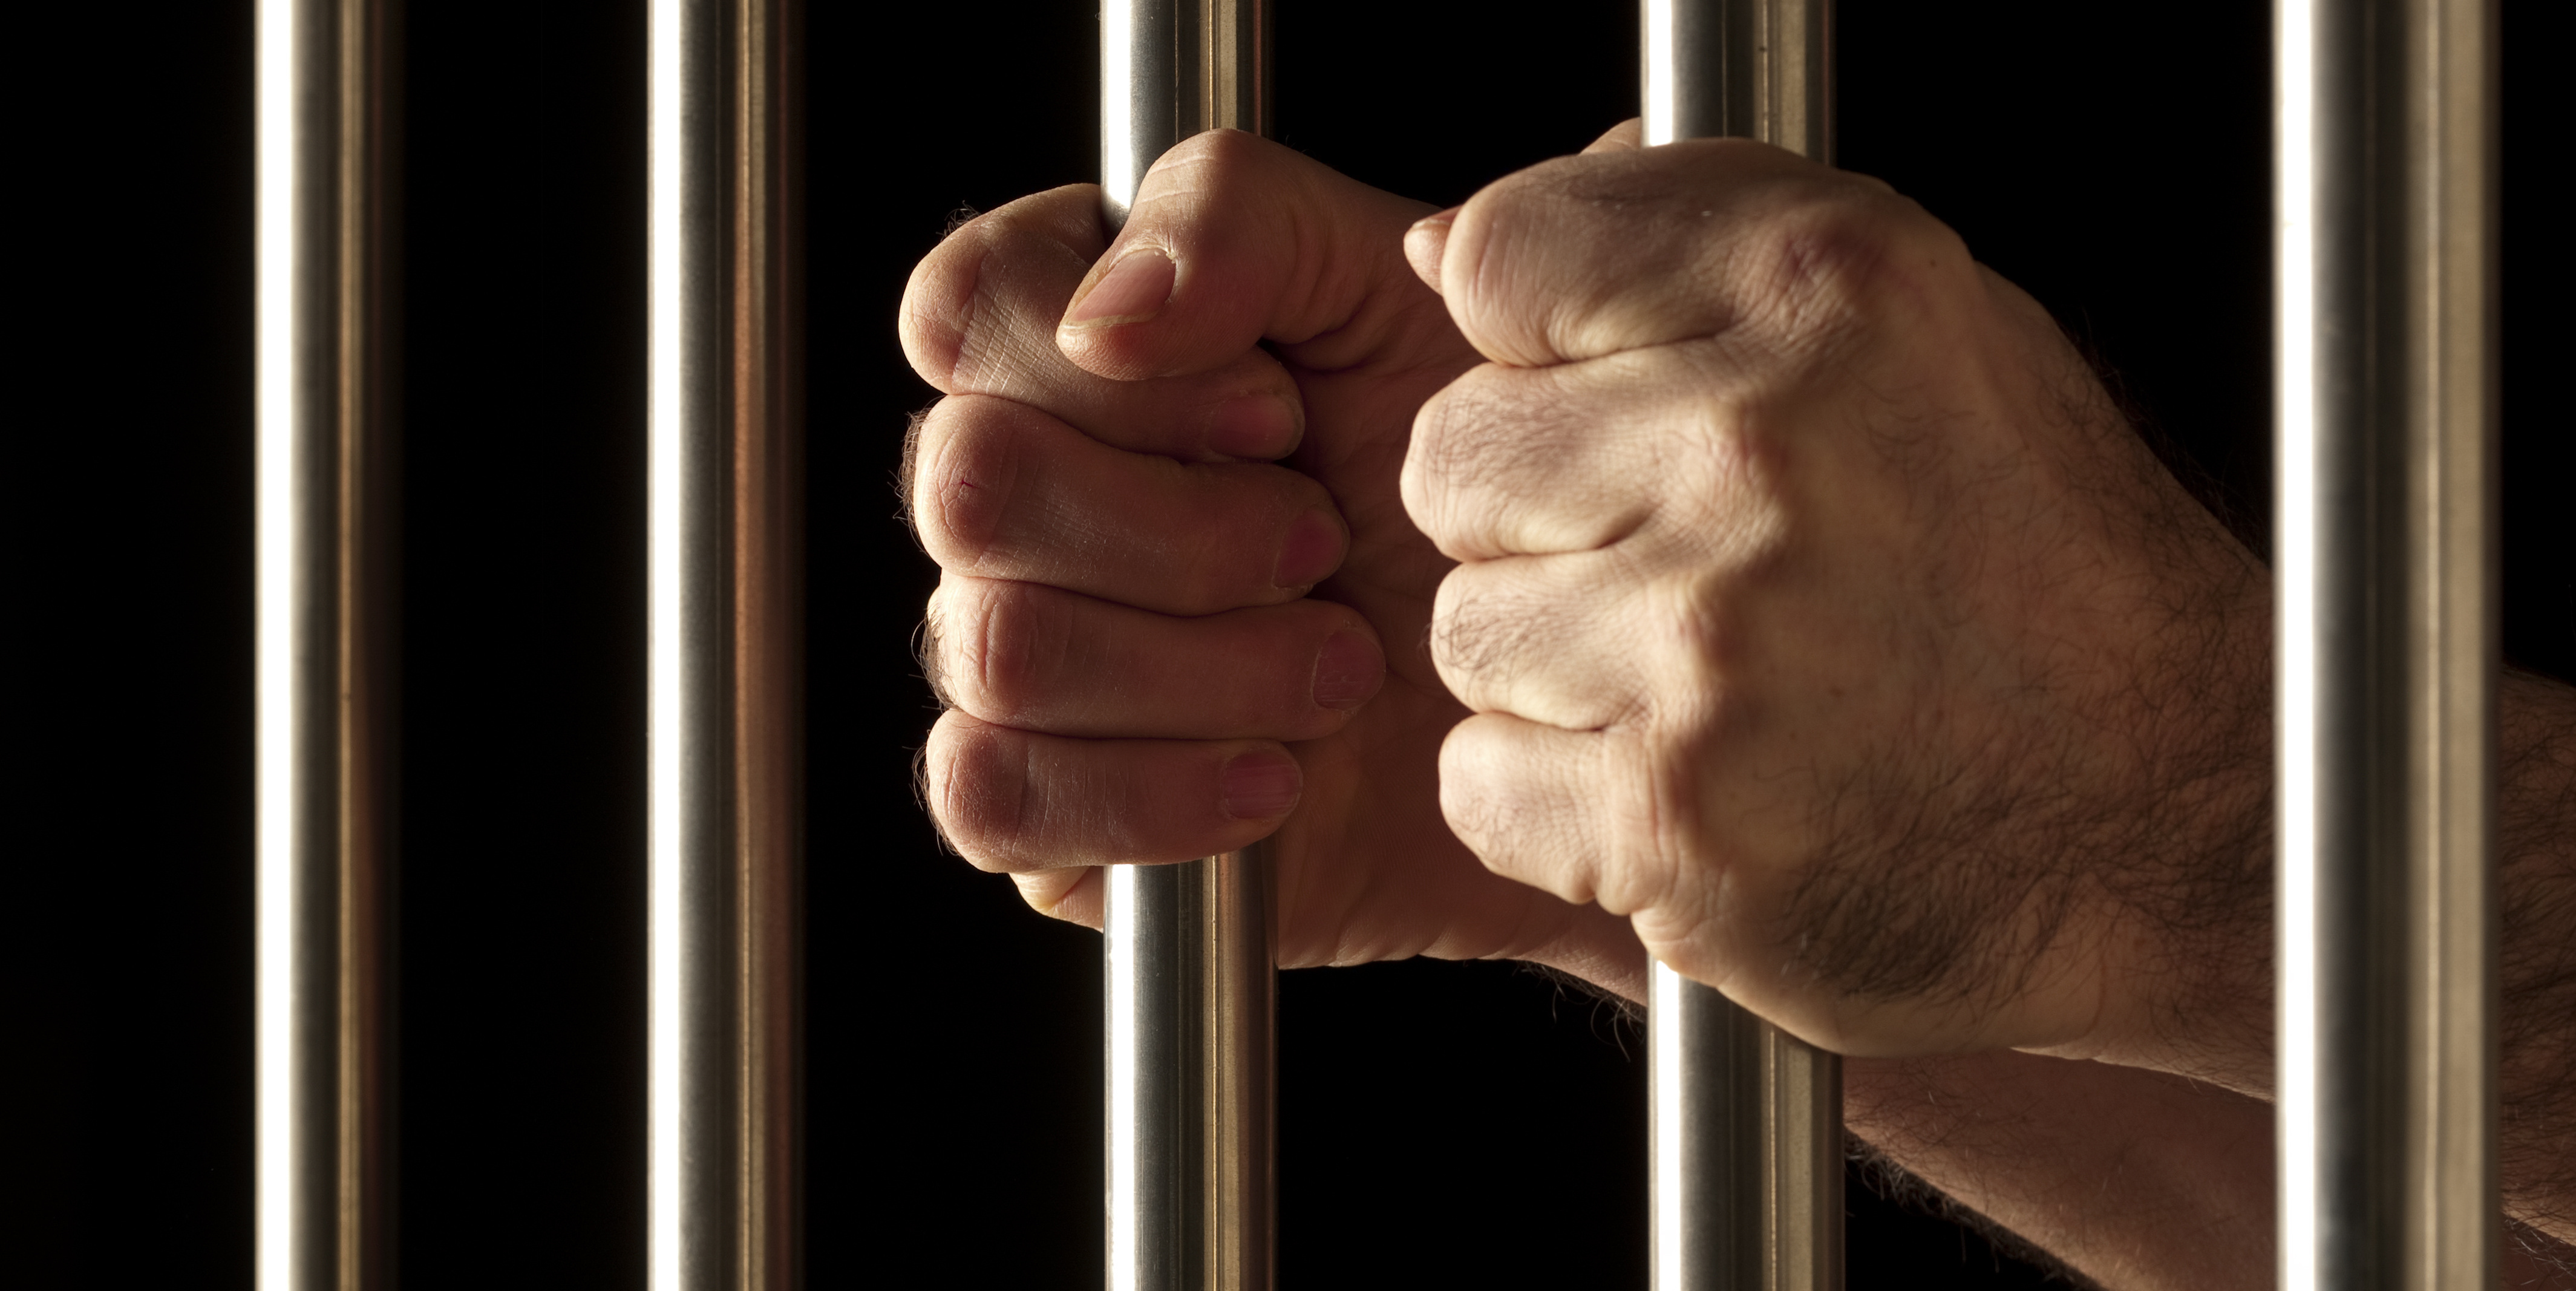 Health Care Fraud Scheme Leads to Indictment of 18